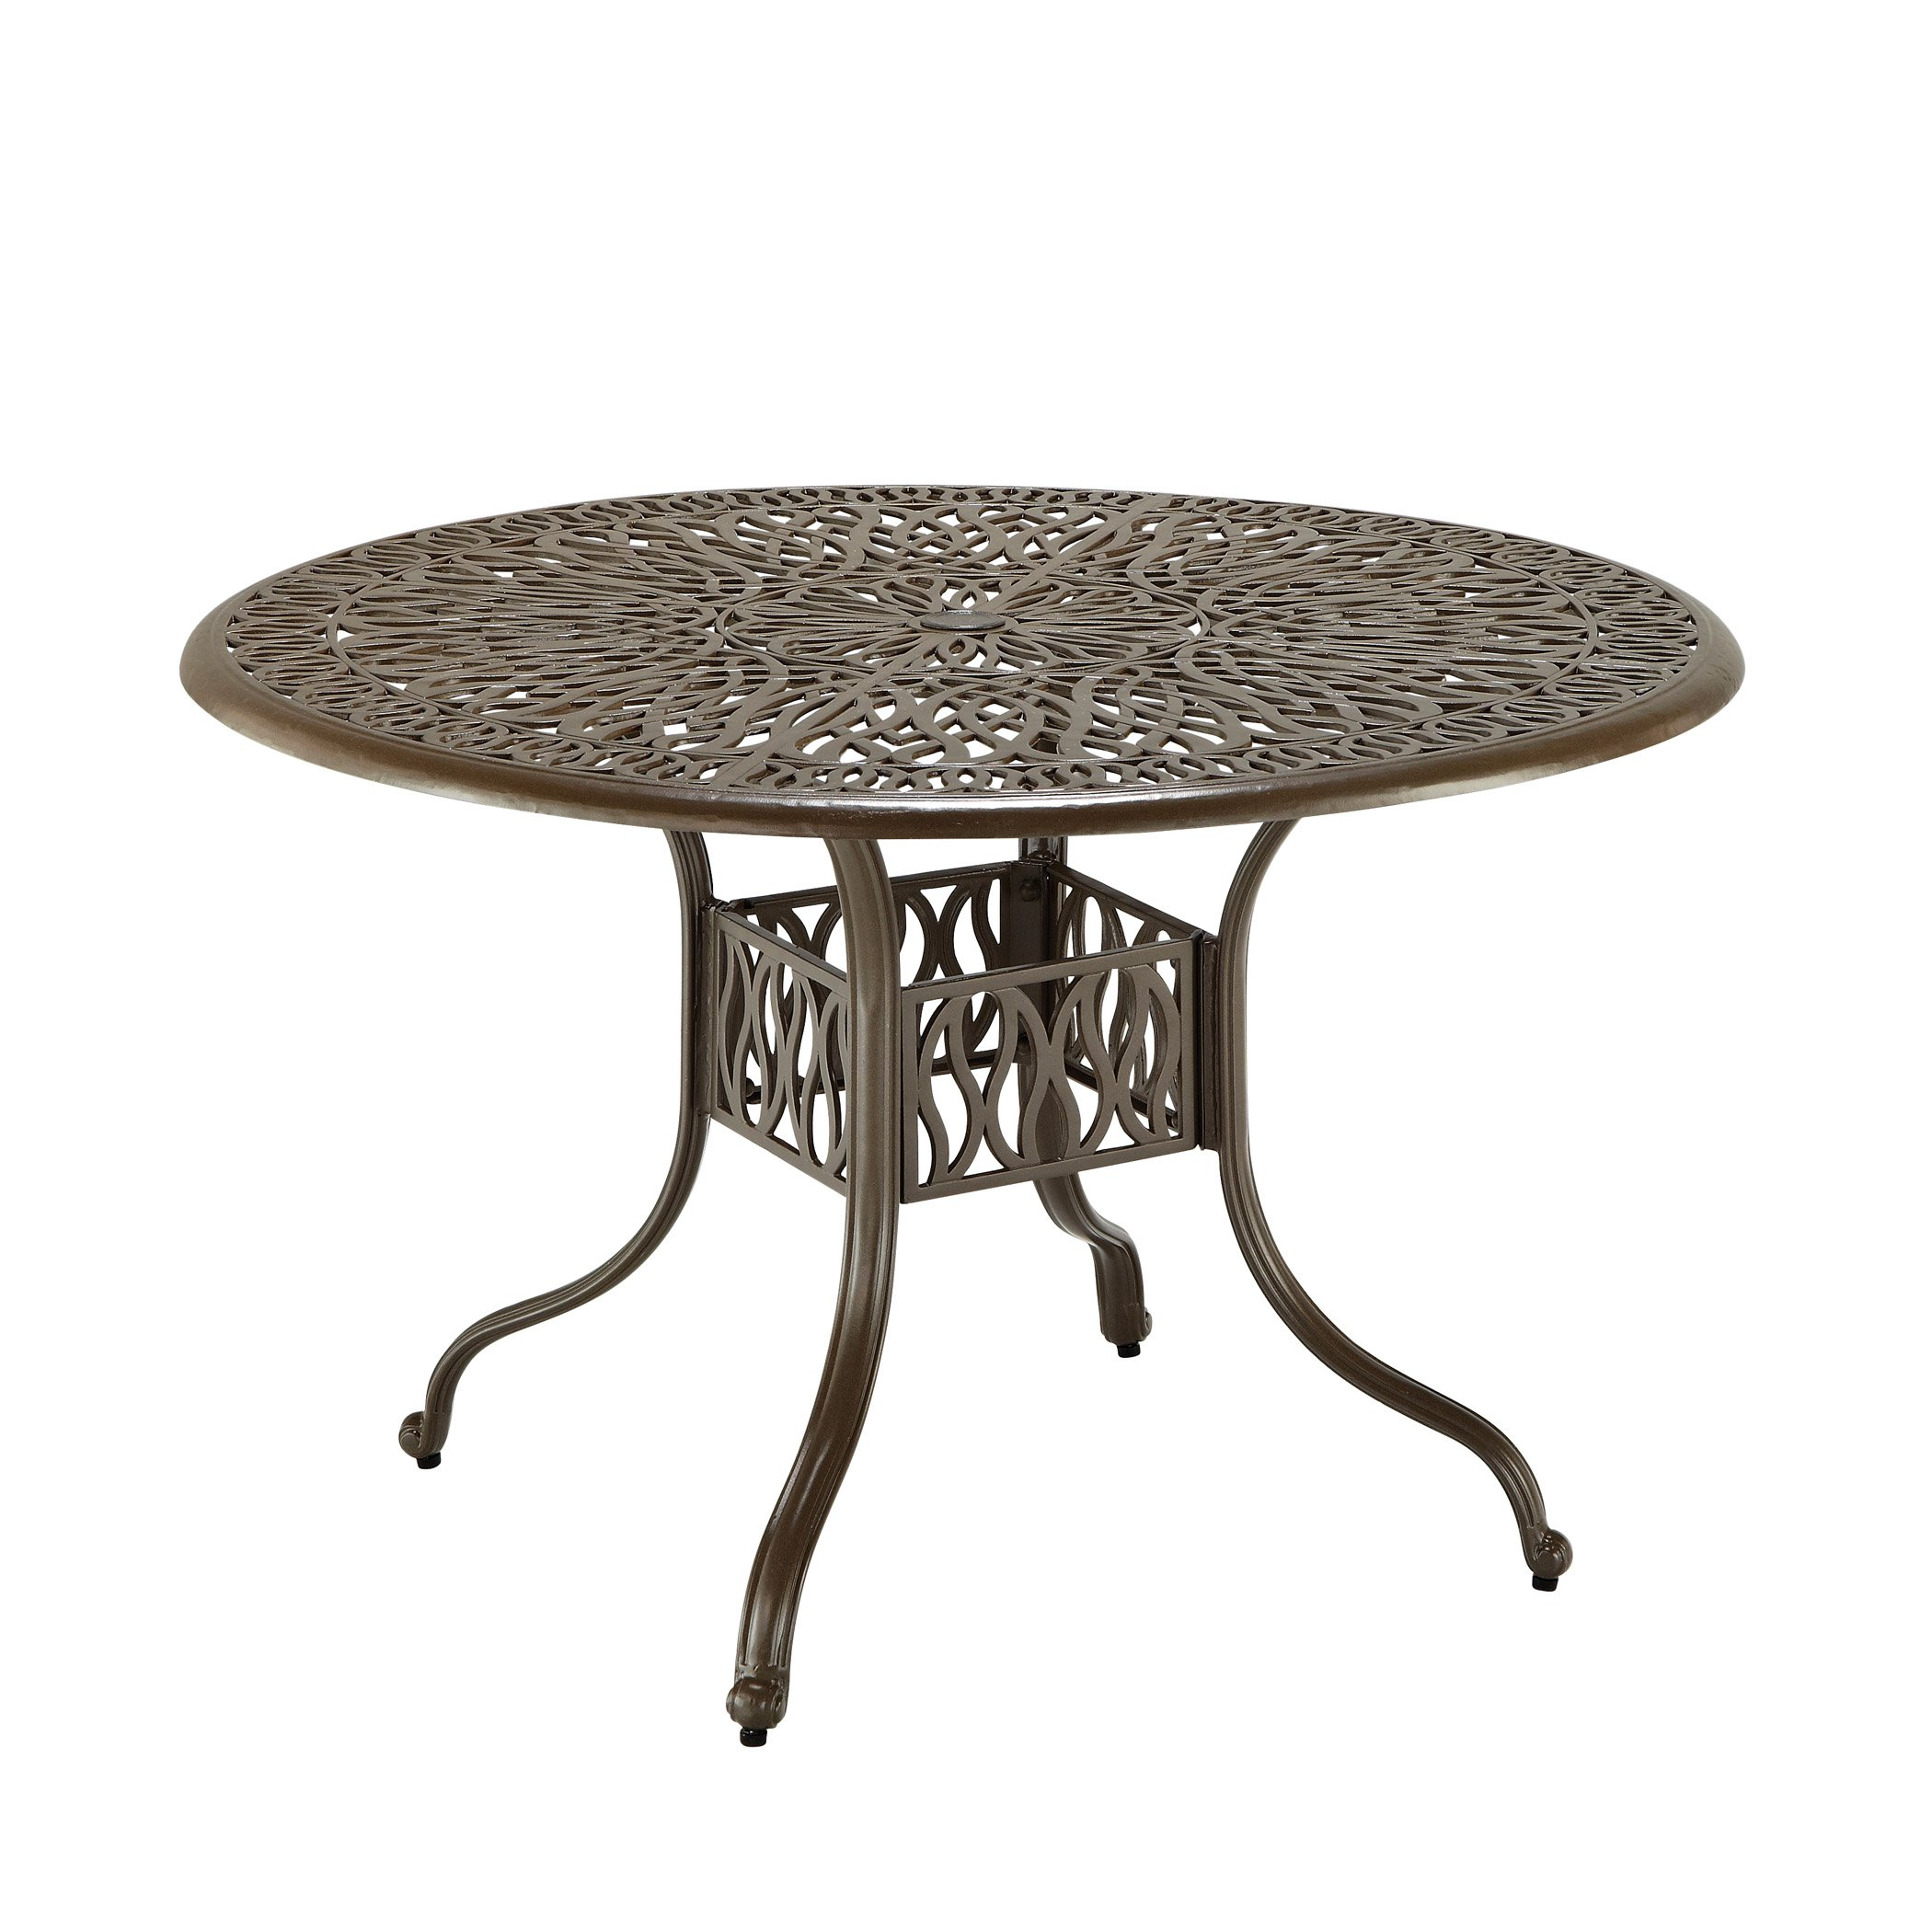 Home Styles 5559-30 Floral Blossom 42-Inch Round Dining Table